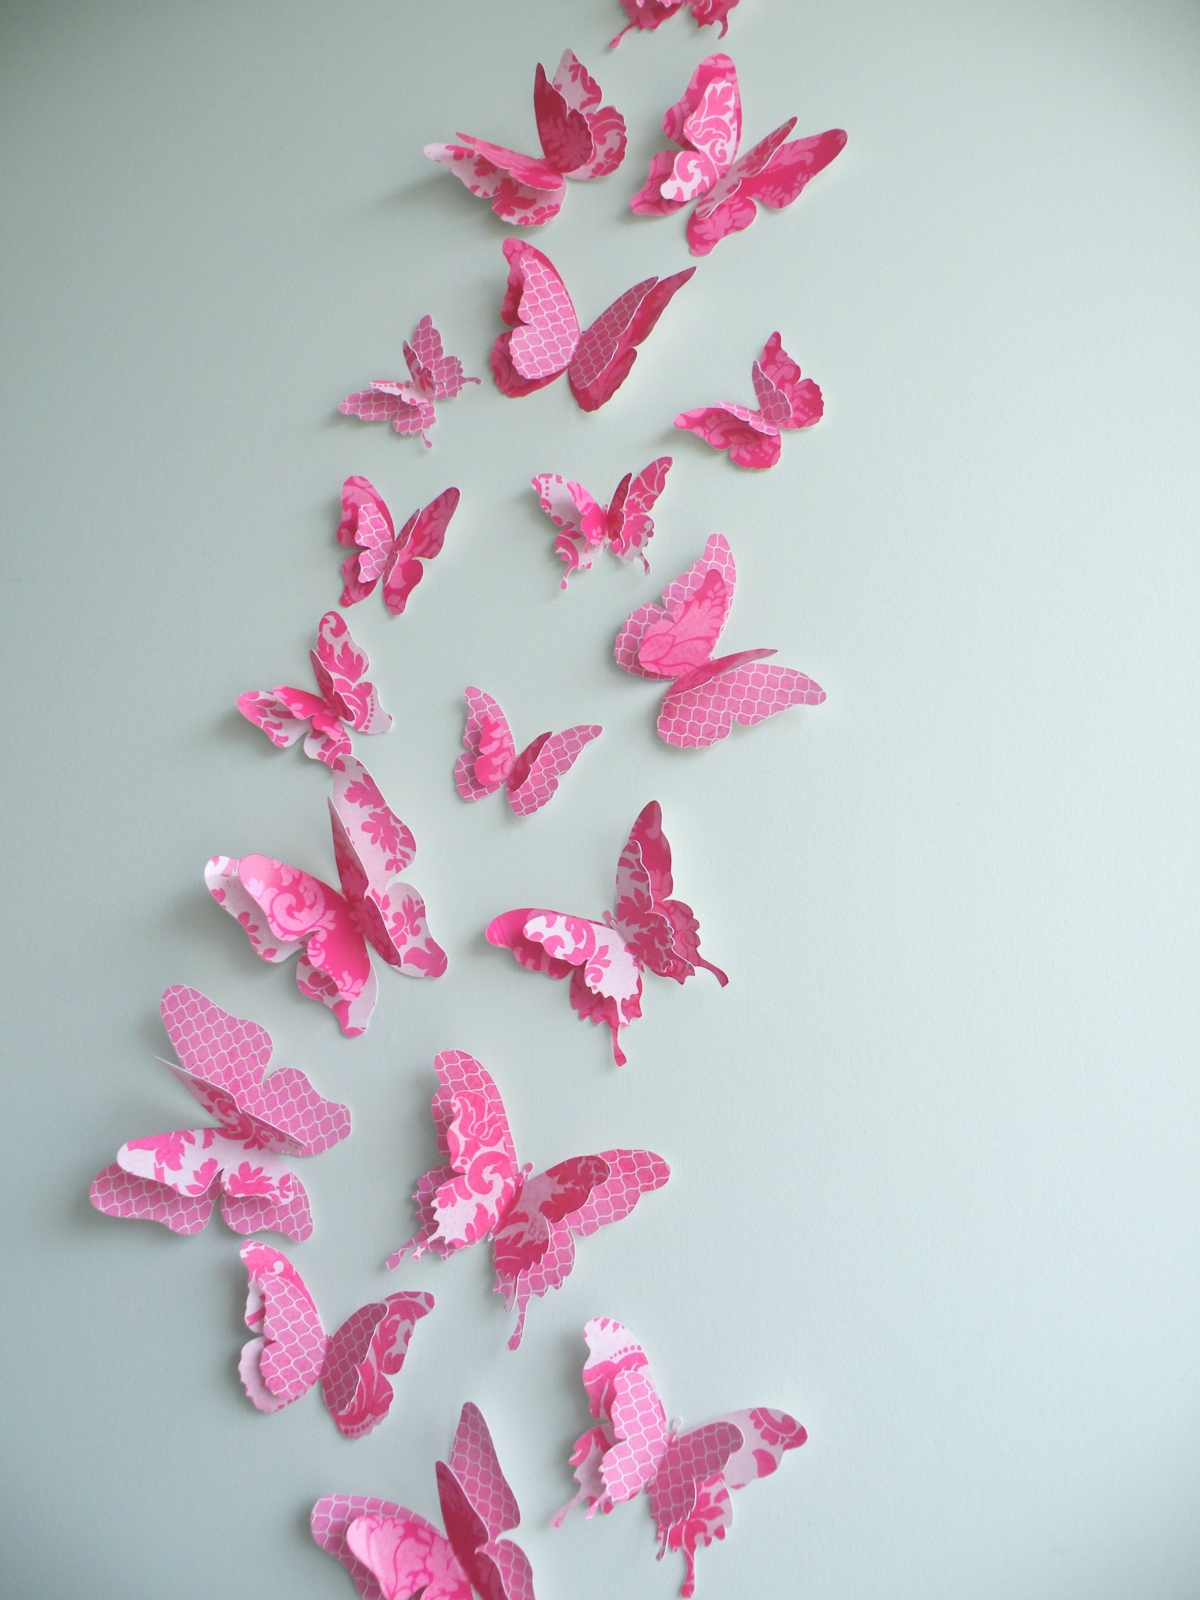 3D Butterfly Wall Decor